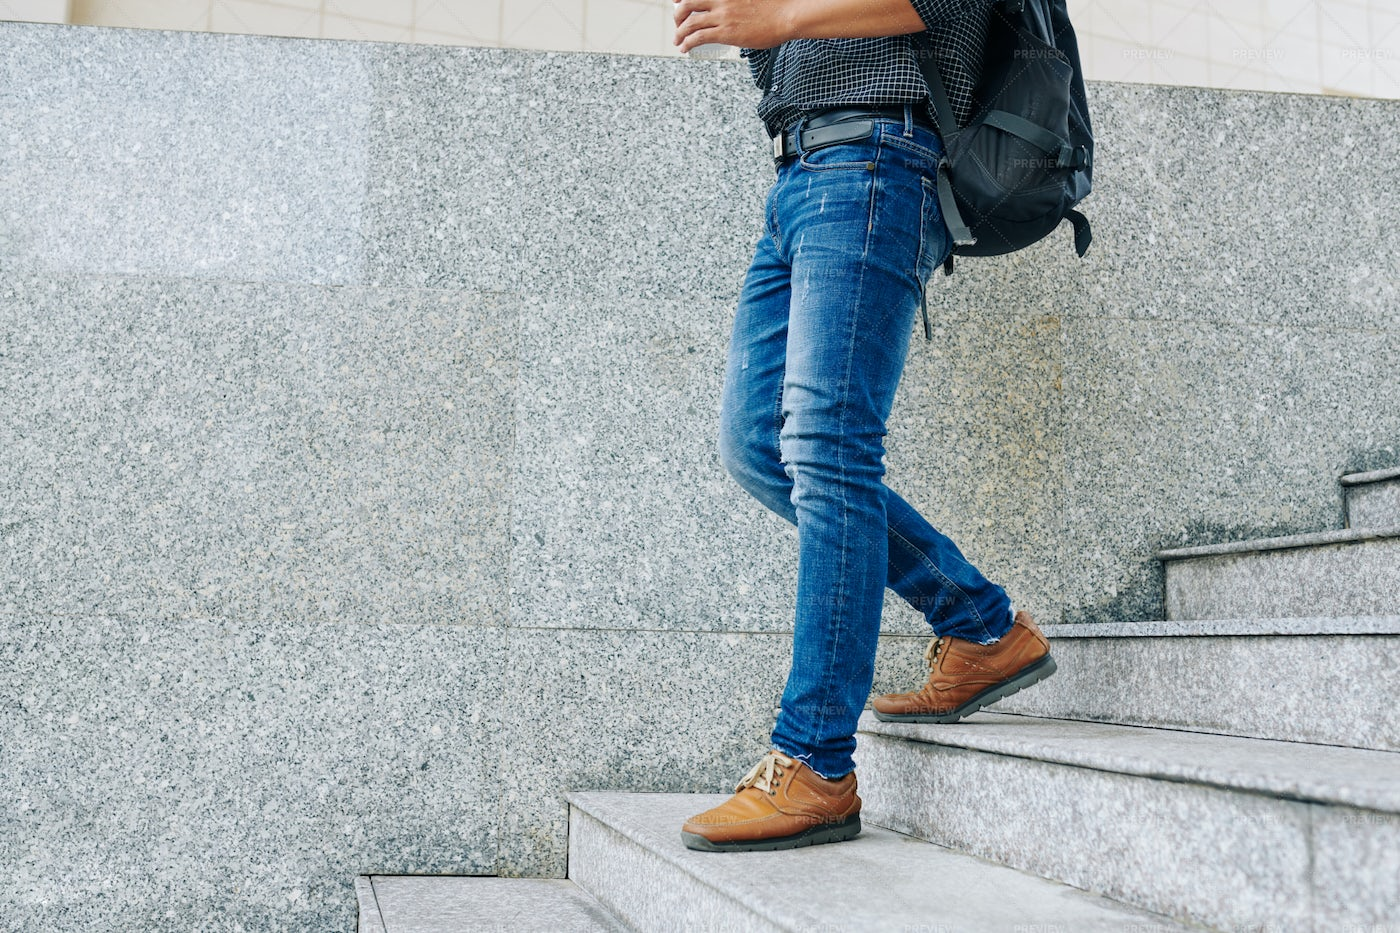 Man Walking Down The Stairs: Stock Photos